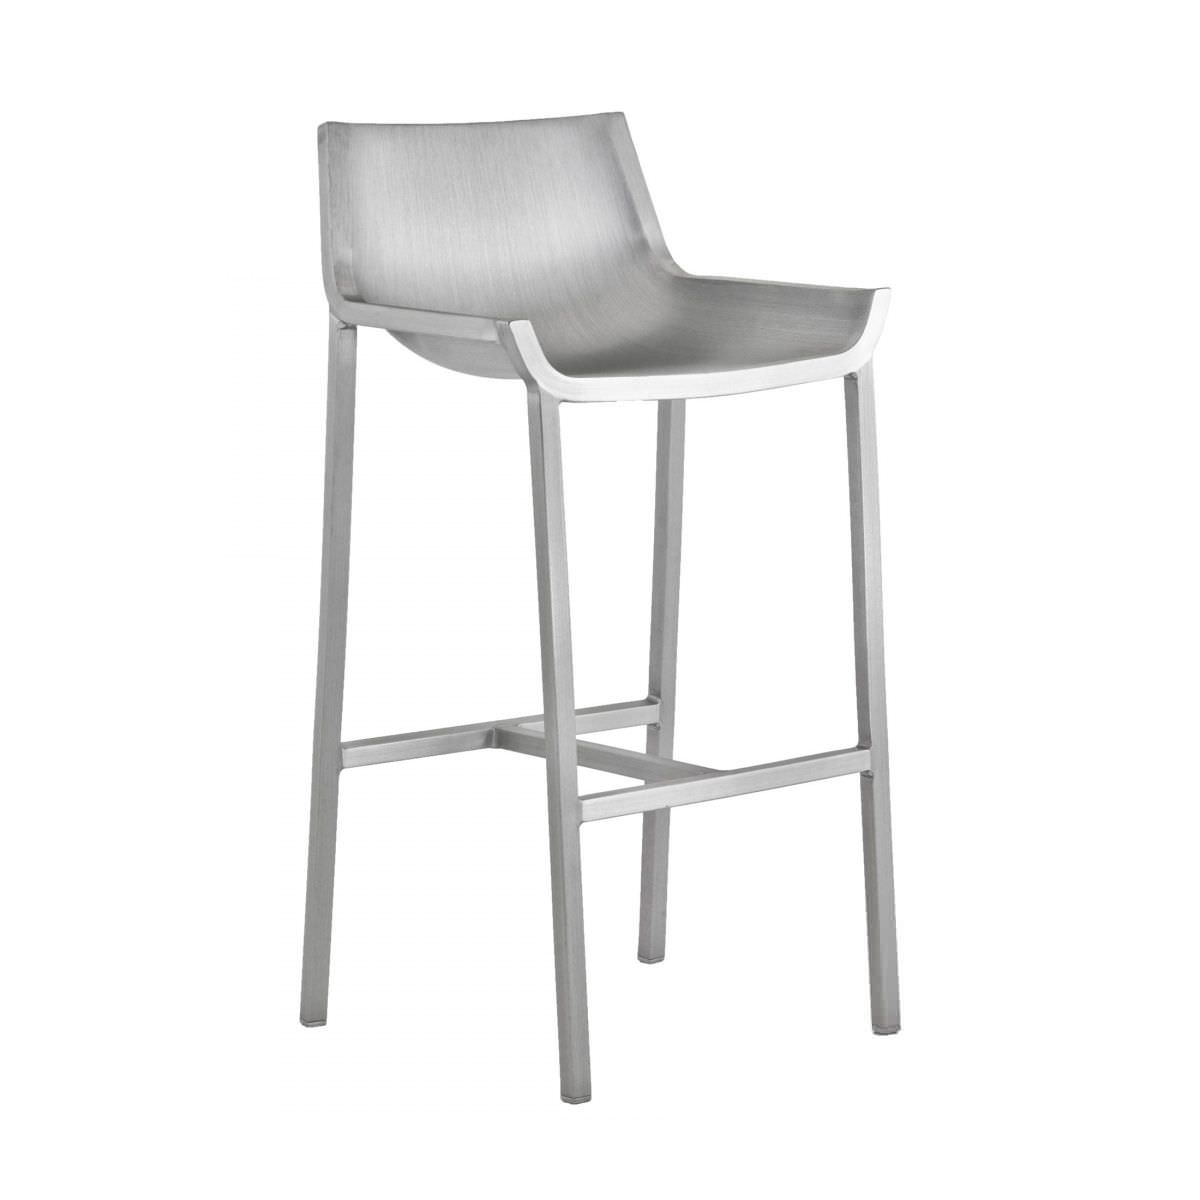 Contemporary Bar Stool / Aluminum / Made From Recycled Materials /  Commercial   SEZZ : SEZZBAR 30